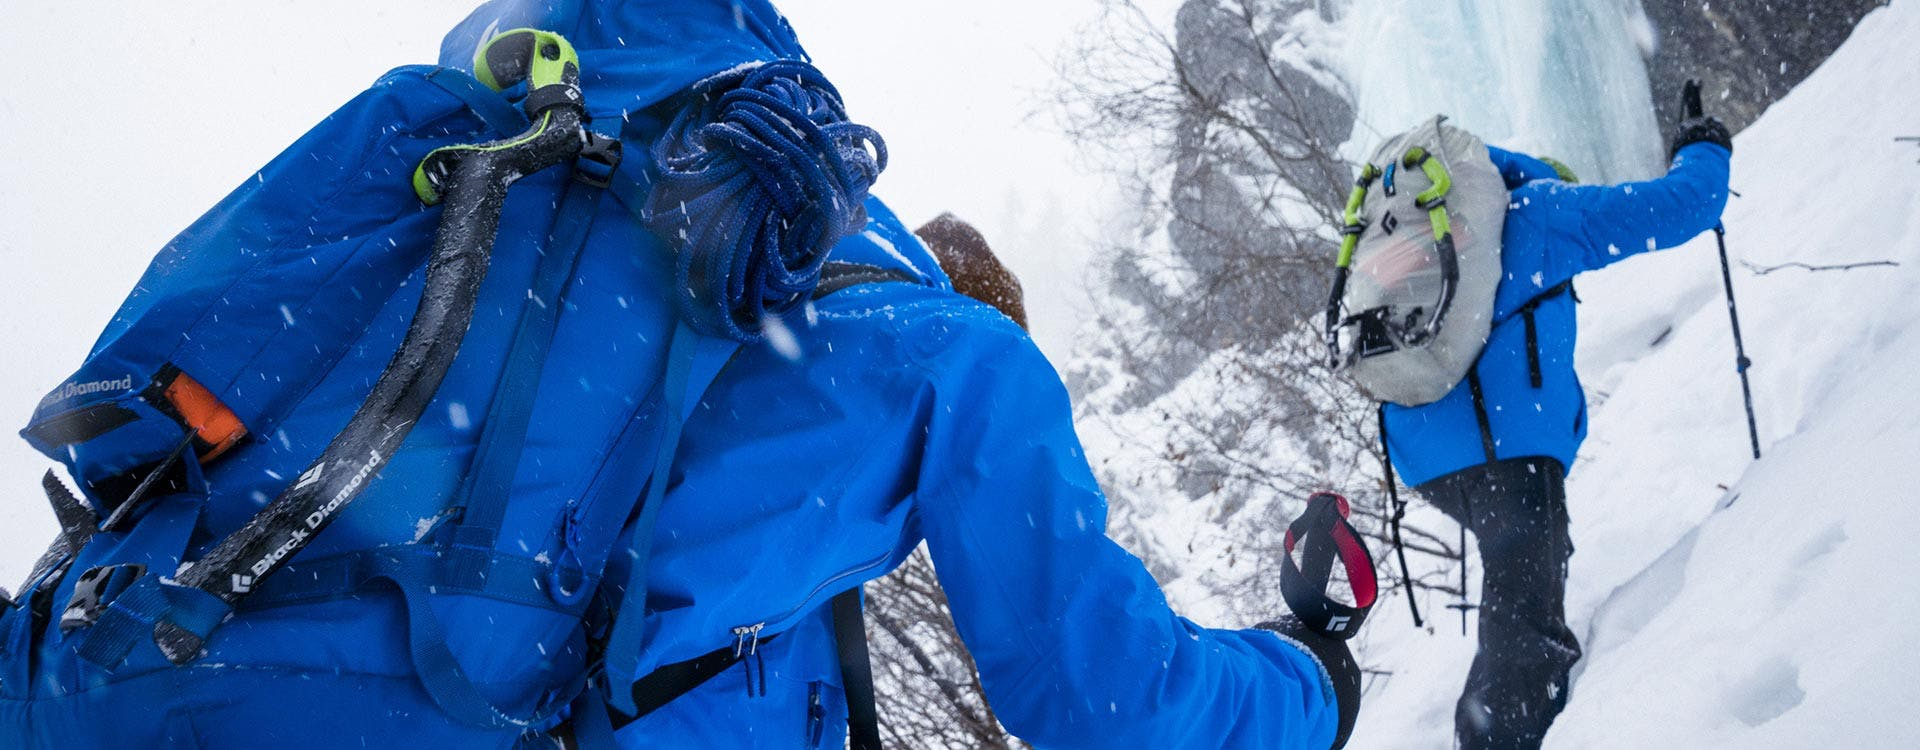 two ice climbers approaching a route